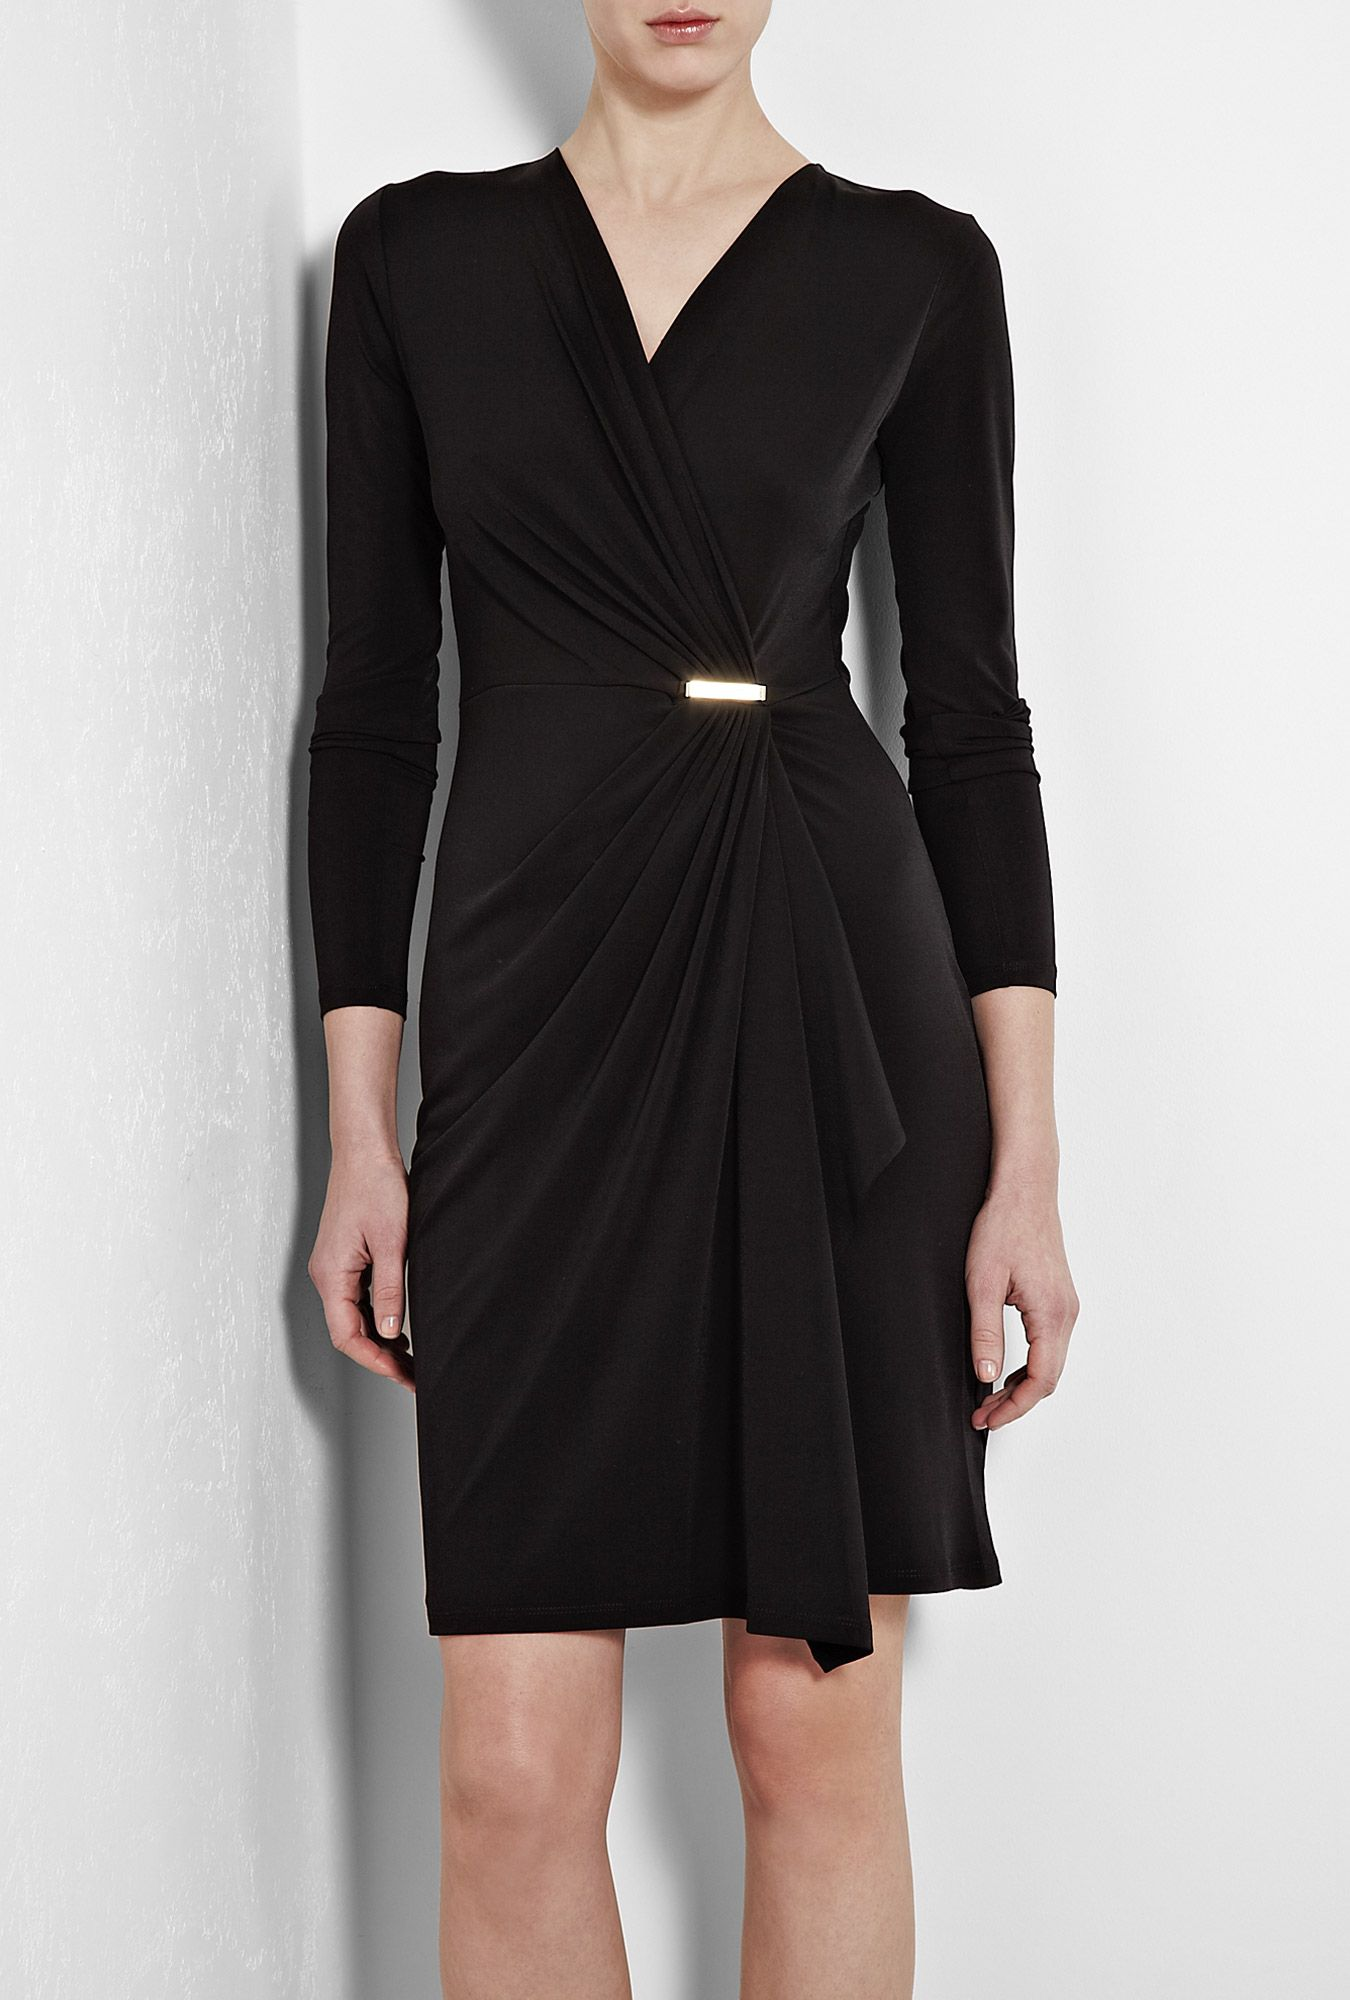 Black Long Sleeve Jersey Wrap Dress By Michael Kors Looking For A Pattern So